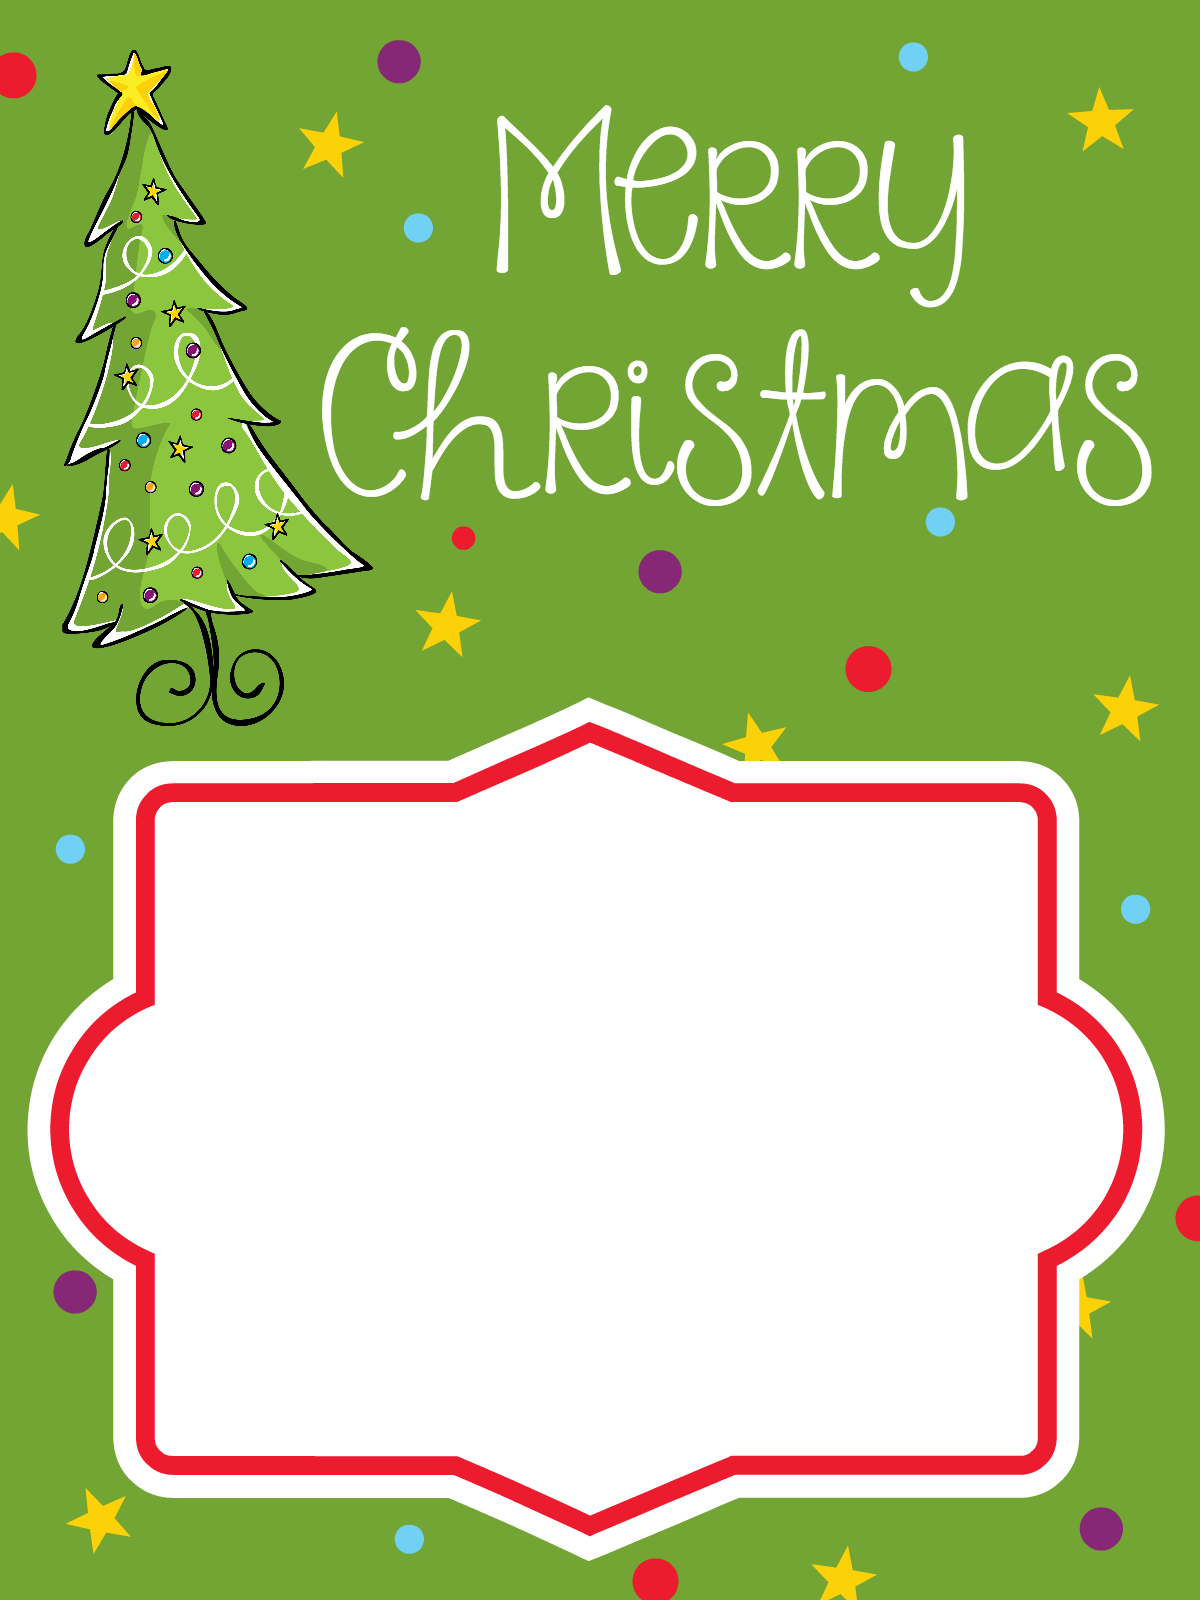 Amazing Christmas Gift Card Images